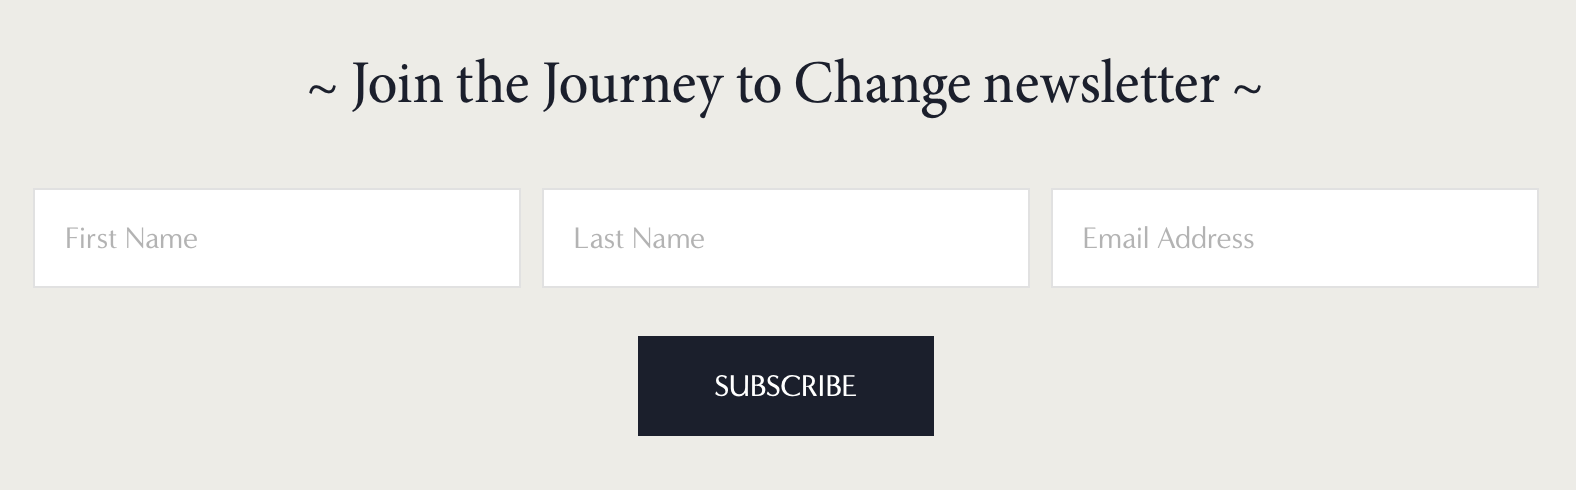 example of Newsletter block button style in squarespace